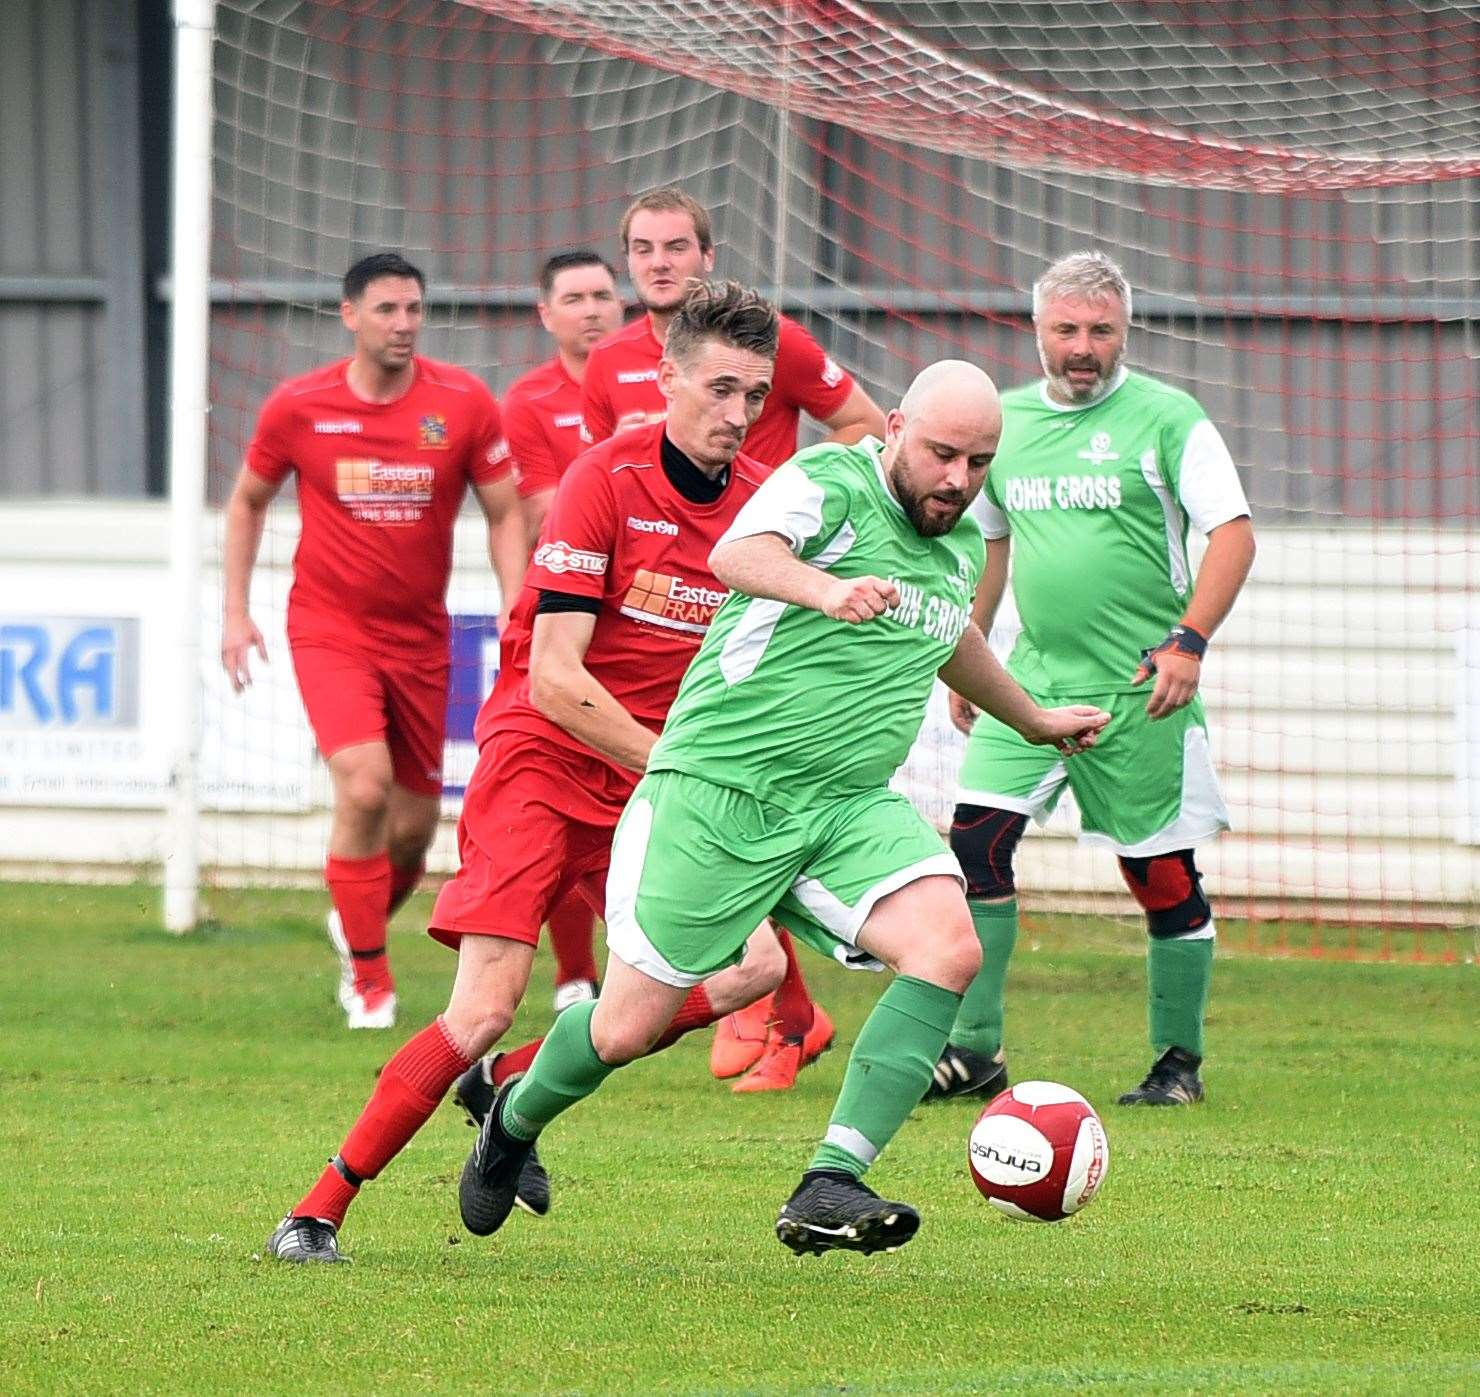 Wisbech Town Legends v Ovendale FC in memory of..Mark Ovendale ex Wisbech Town player and Luton Town FC. (10669375)